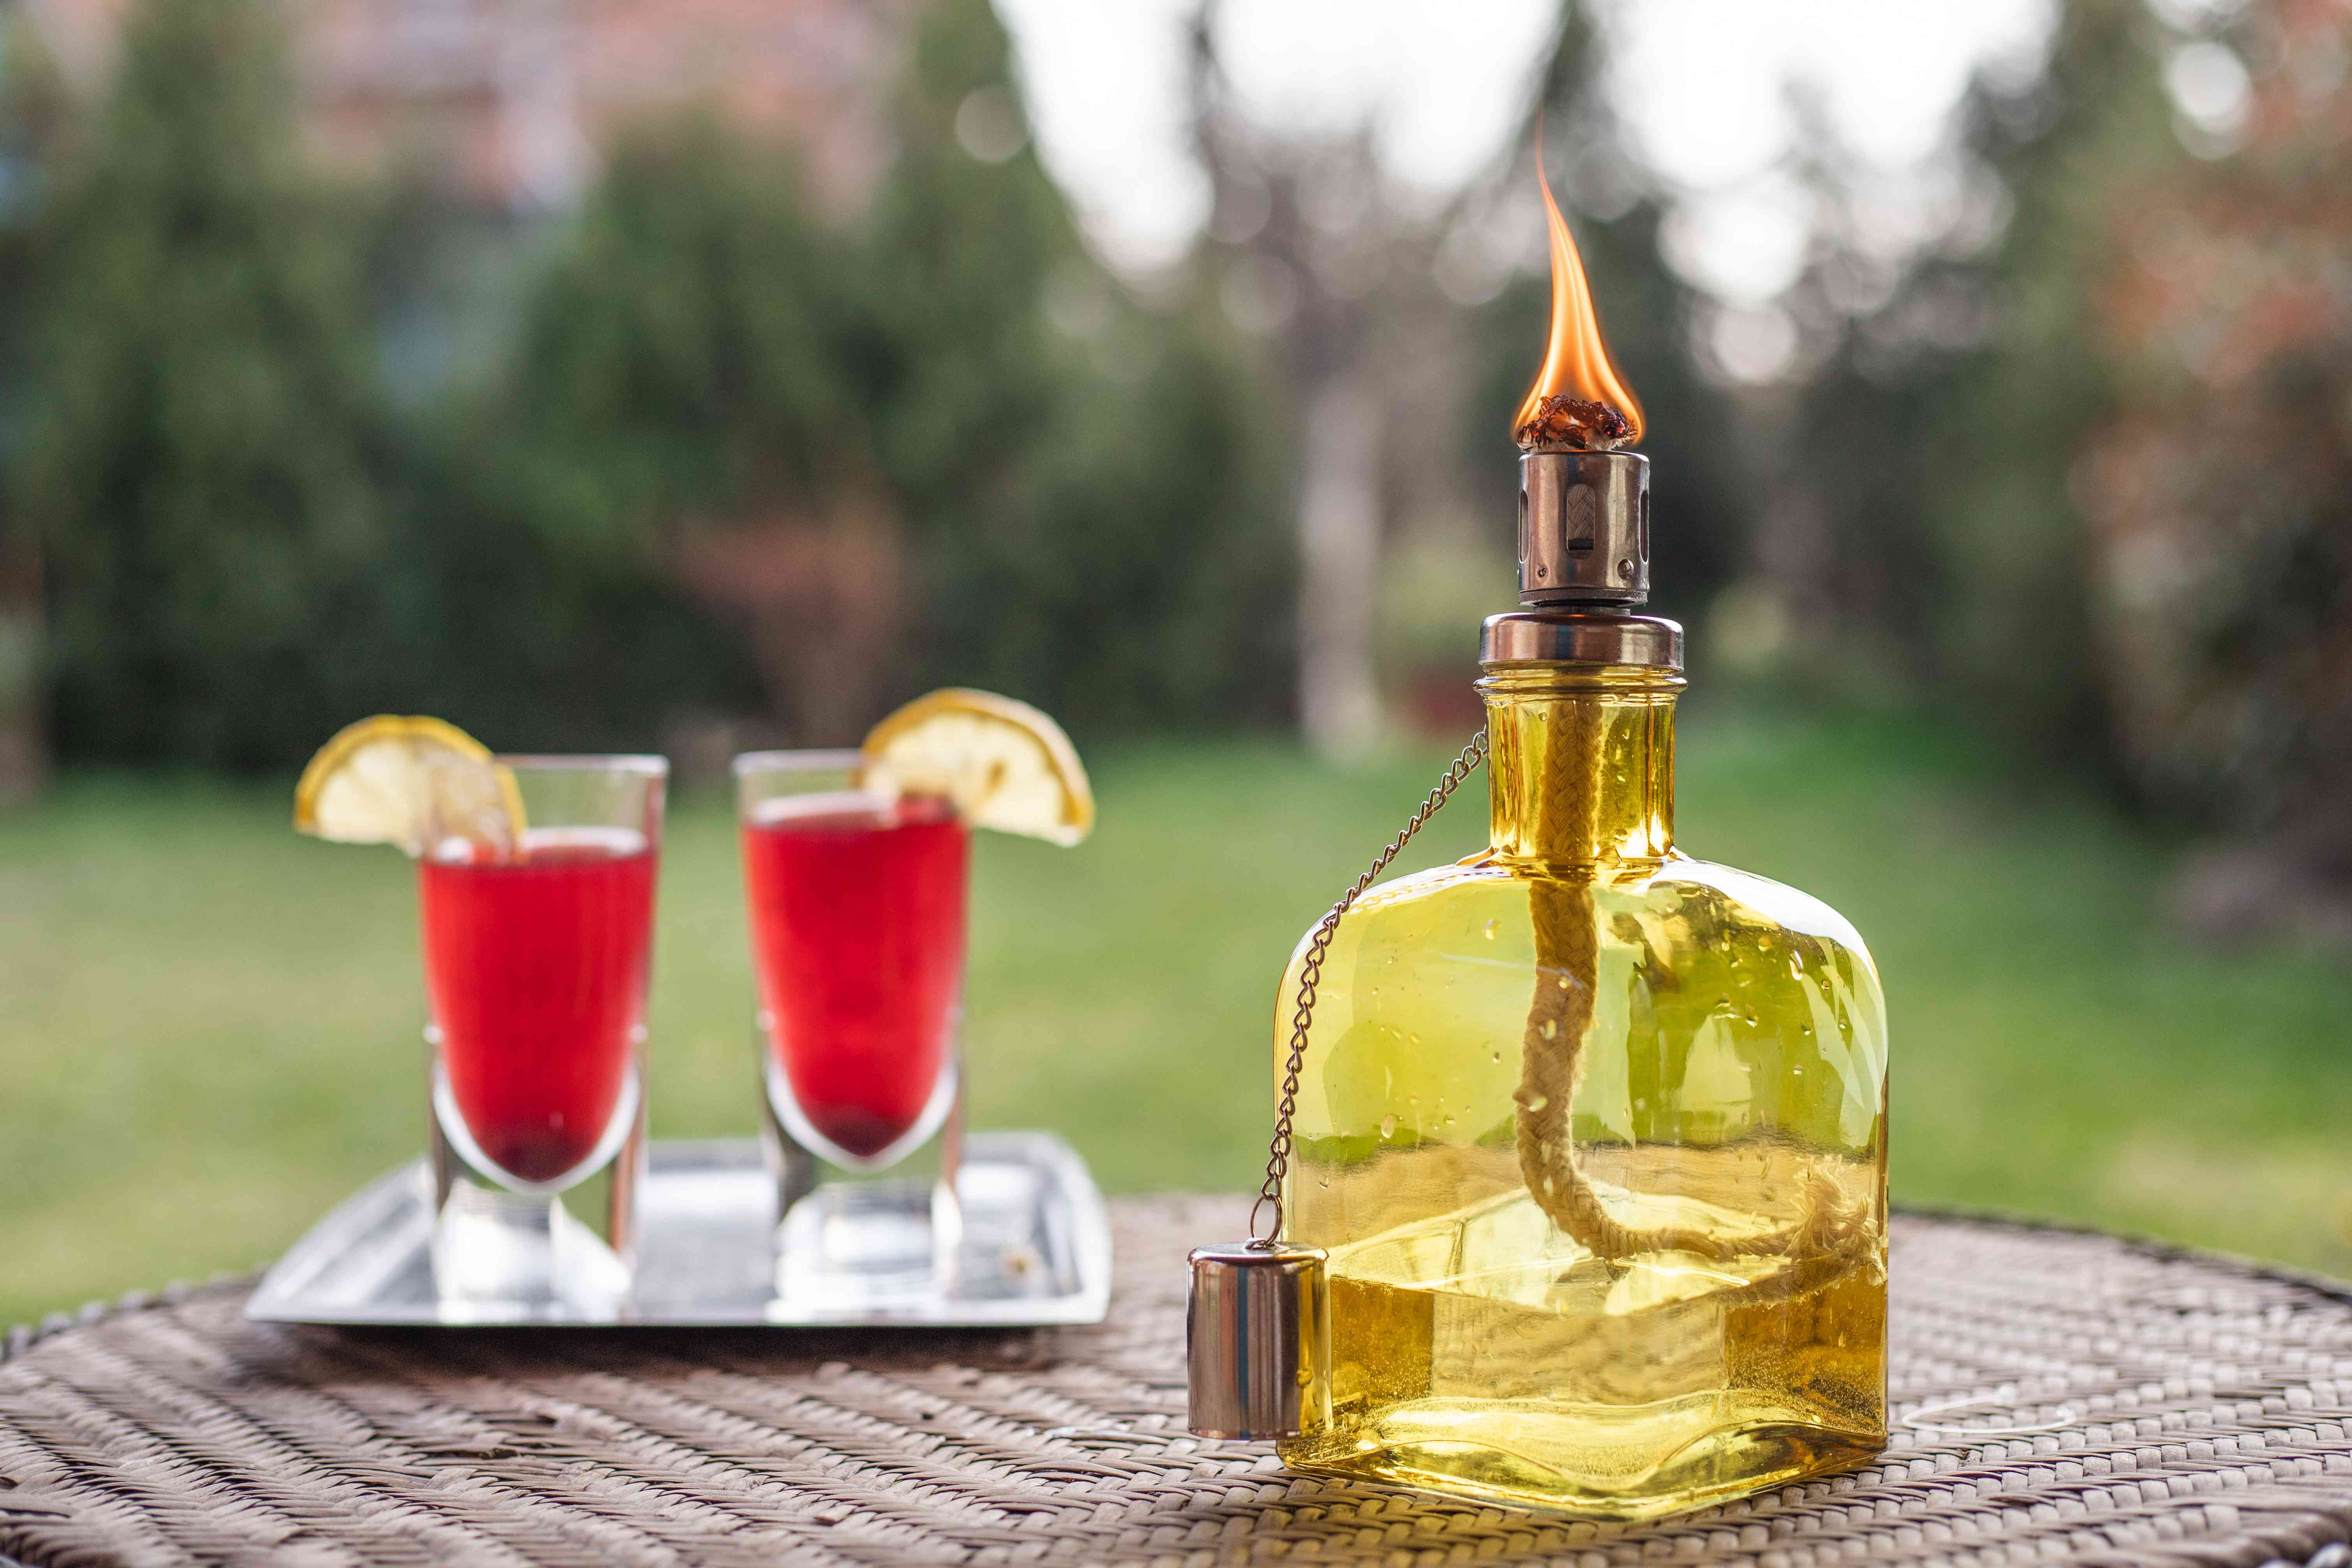 glass bottle turned into lit tiki torch on patio table in backyard with festive drinks